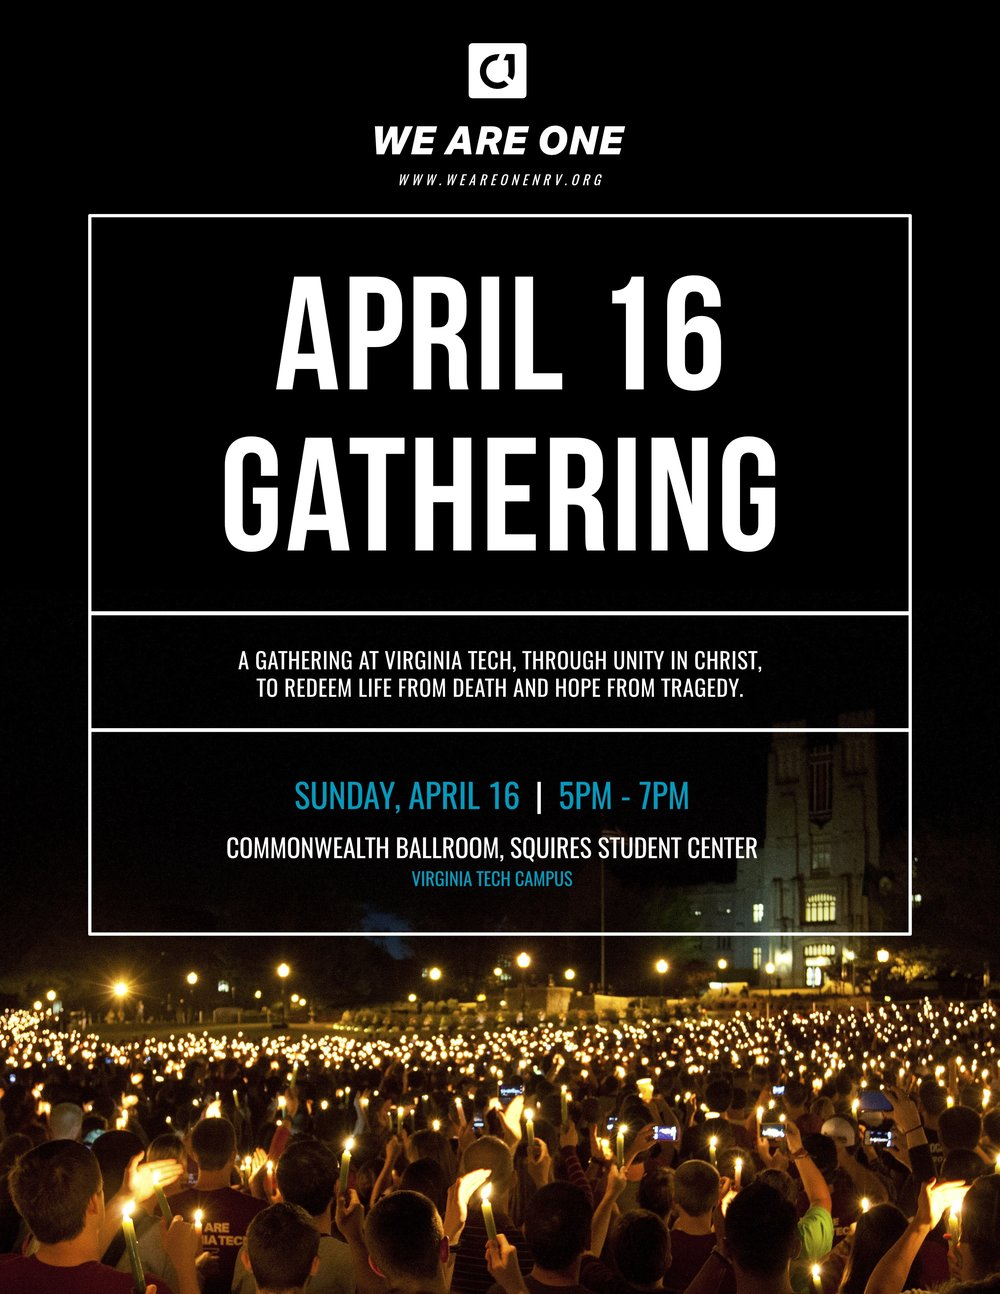 april 16 gathering - flyer (8.5x11).jpg